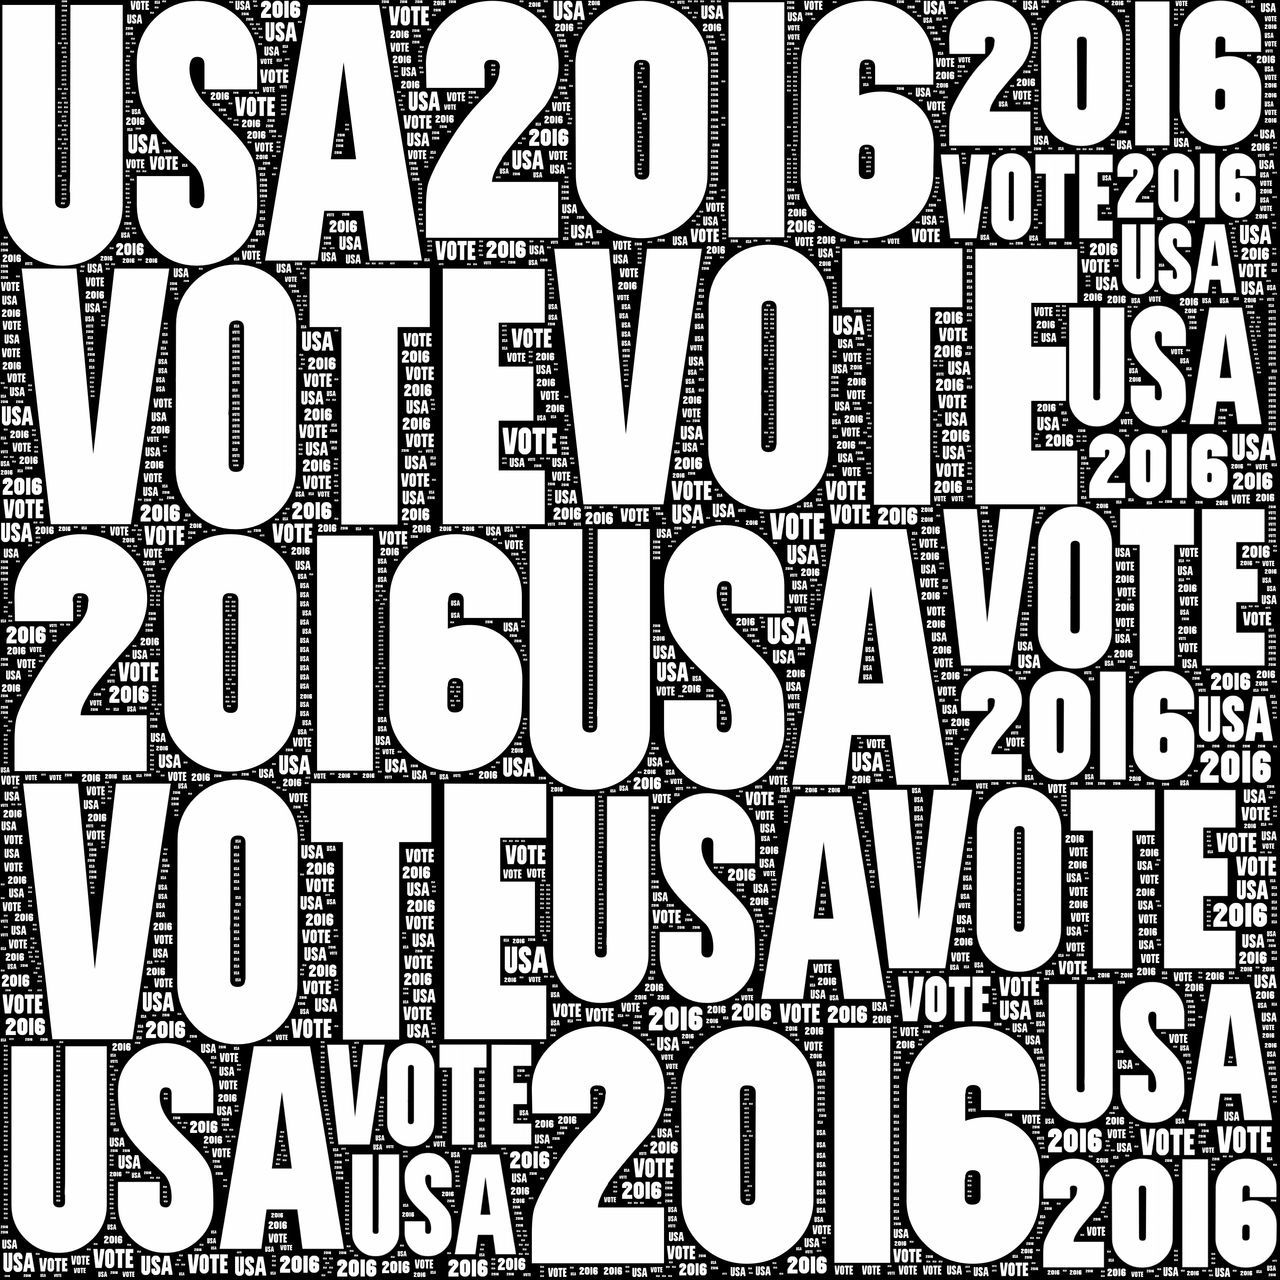 Vote USA 2016 Black and white VOTE USA 2016 sign. 2016 American Blackandwhite Campaign Democracy Democrat Democratic Election Electricity  Government Icon National No People Patriotism President Presidential Sign Sumbol Text United States USA Vote Voter Voting White